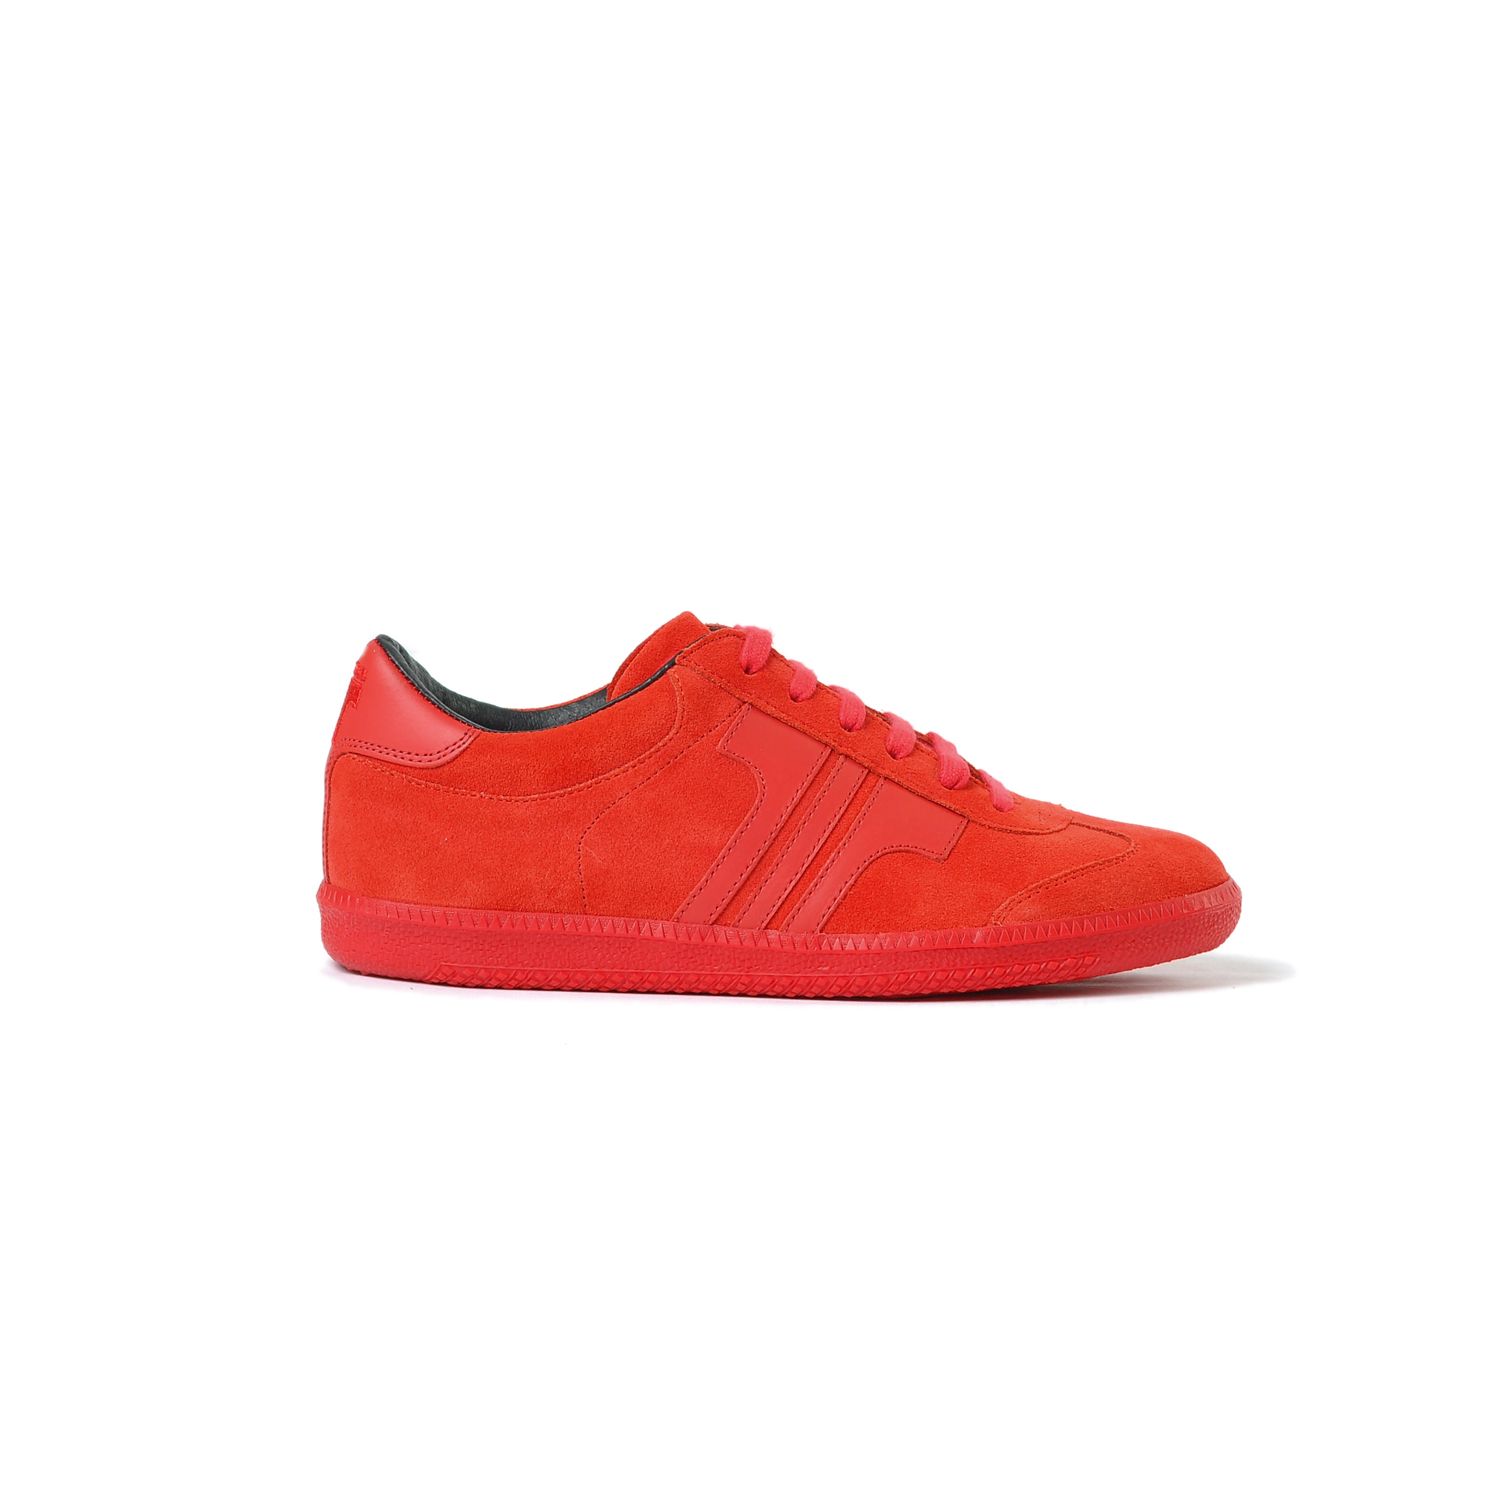 Tisza ahoes - Compakt - Red